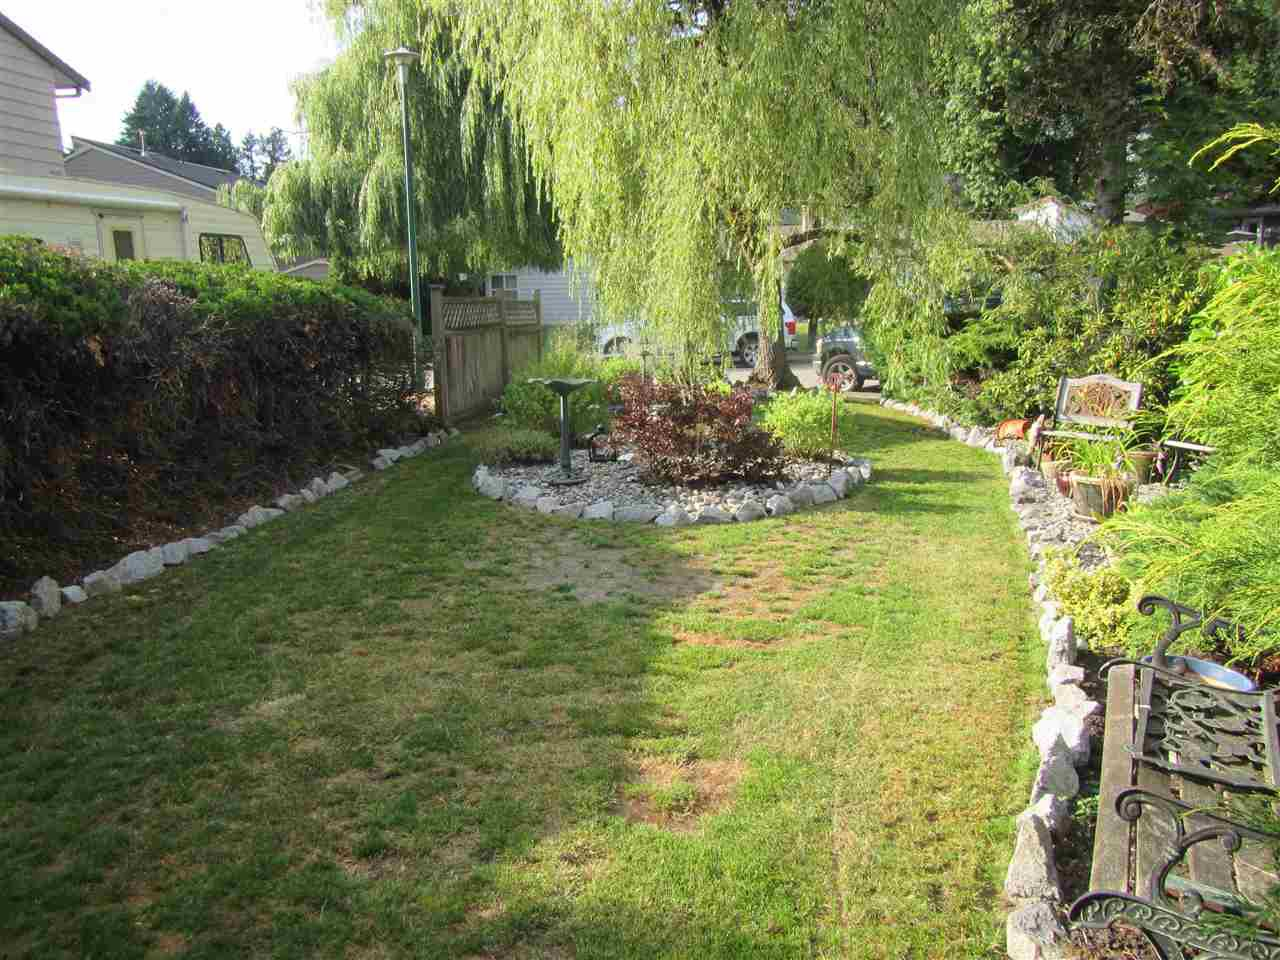 Photo 3: Photos: 2954 BOUTHOT Court in Coquitlam: Meadow Brook House for sale : MLS®# R2387761